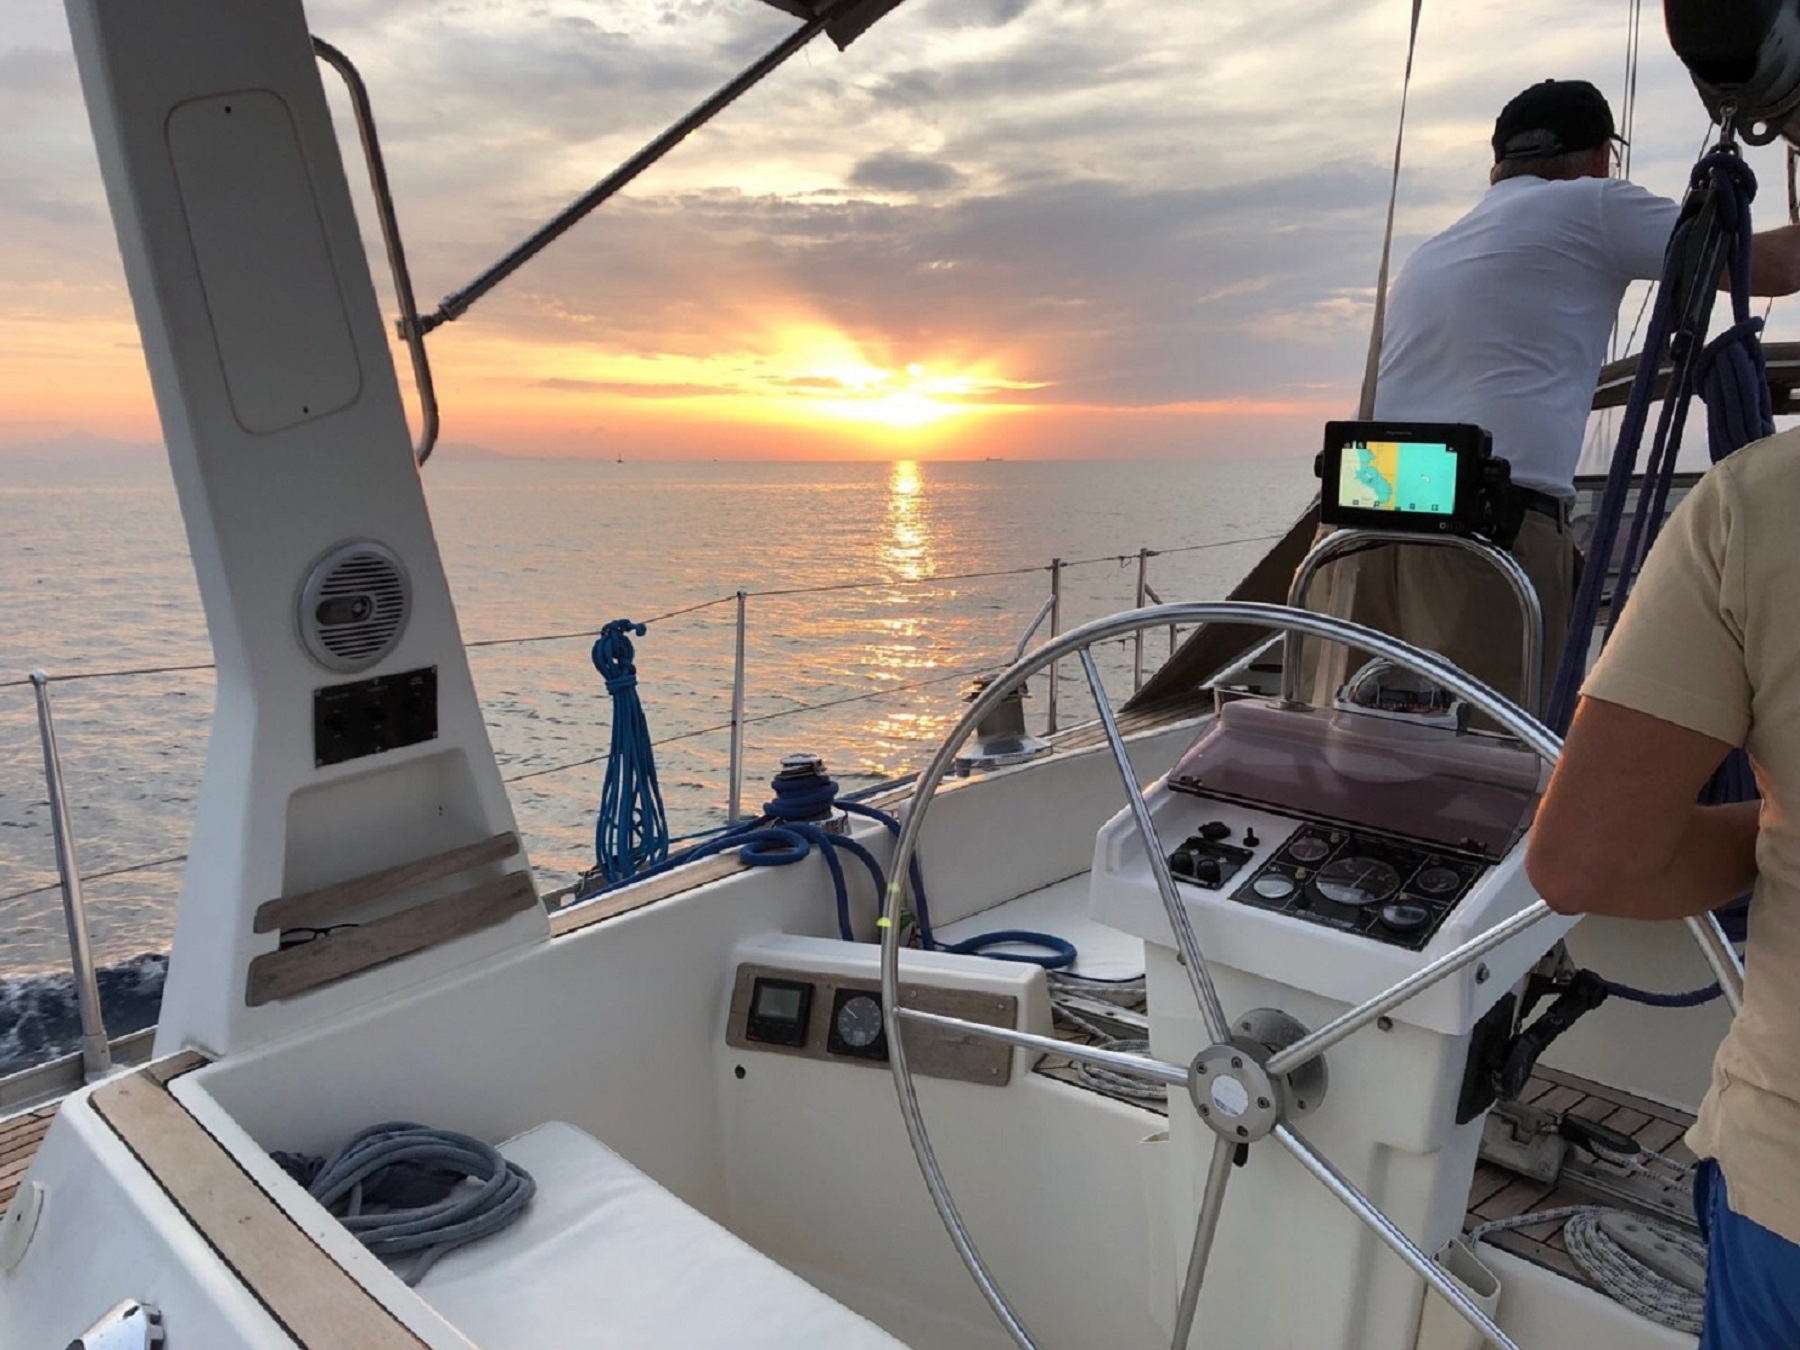 Sail the Sunset - Afternoon trip